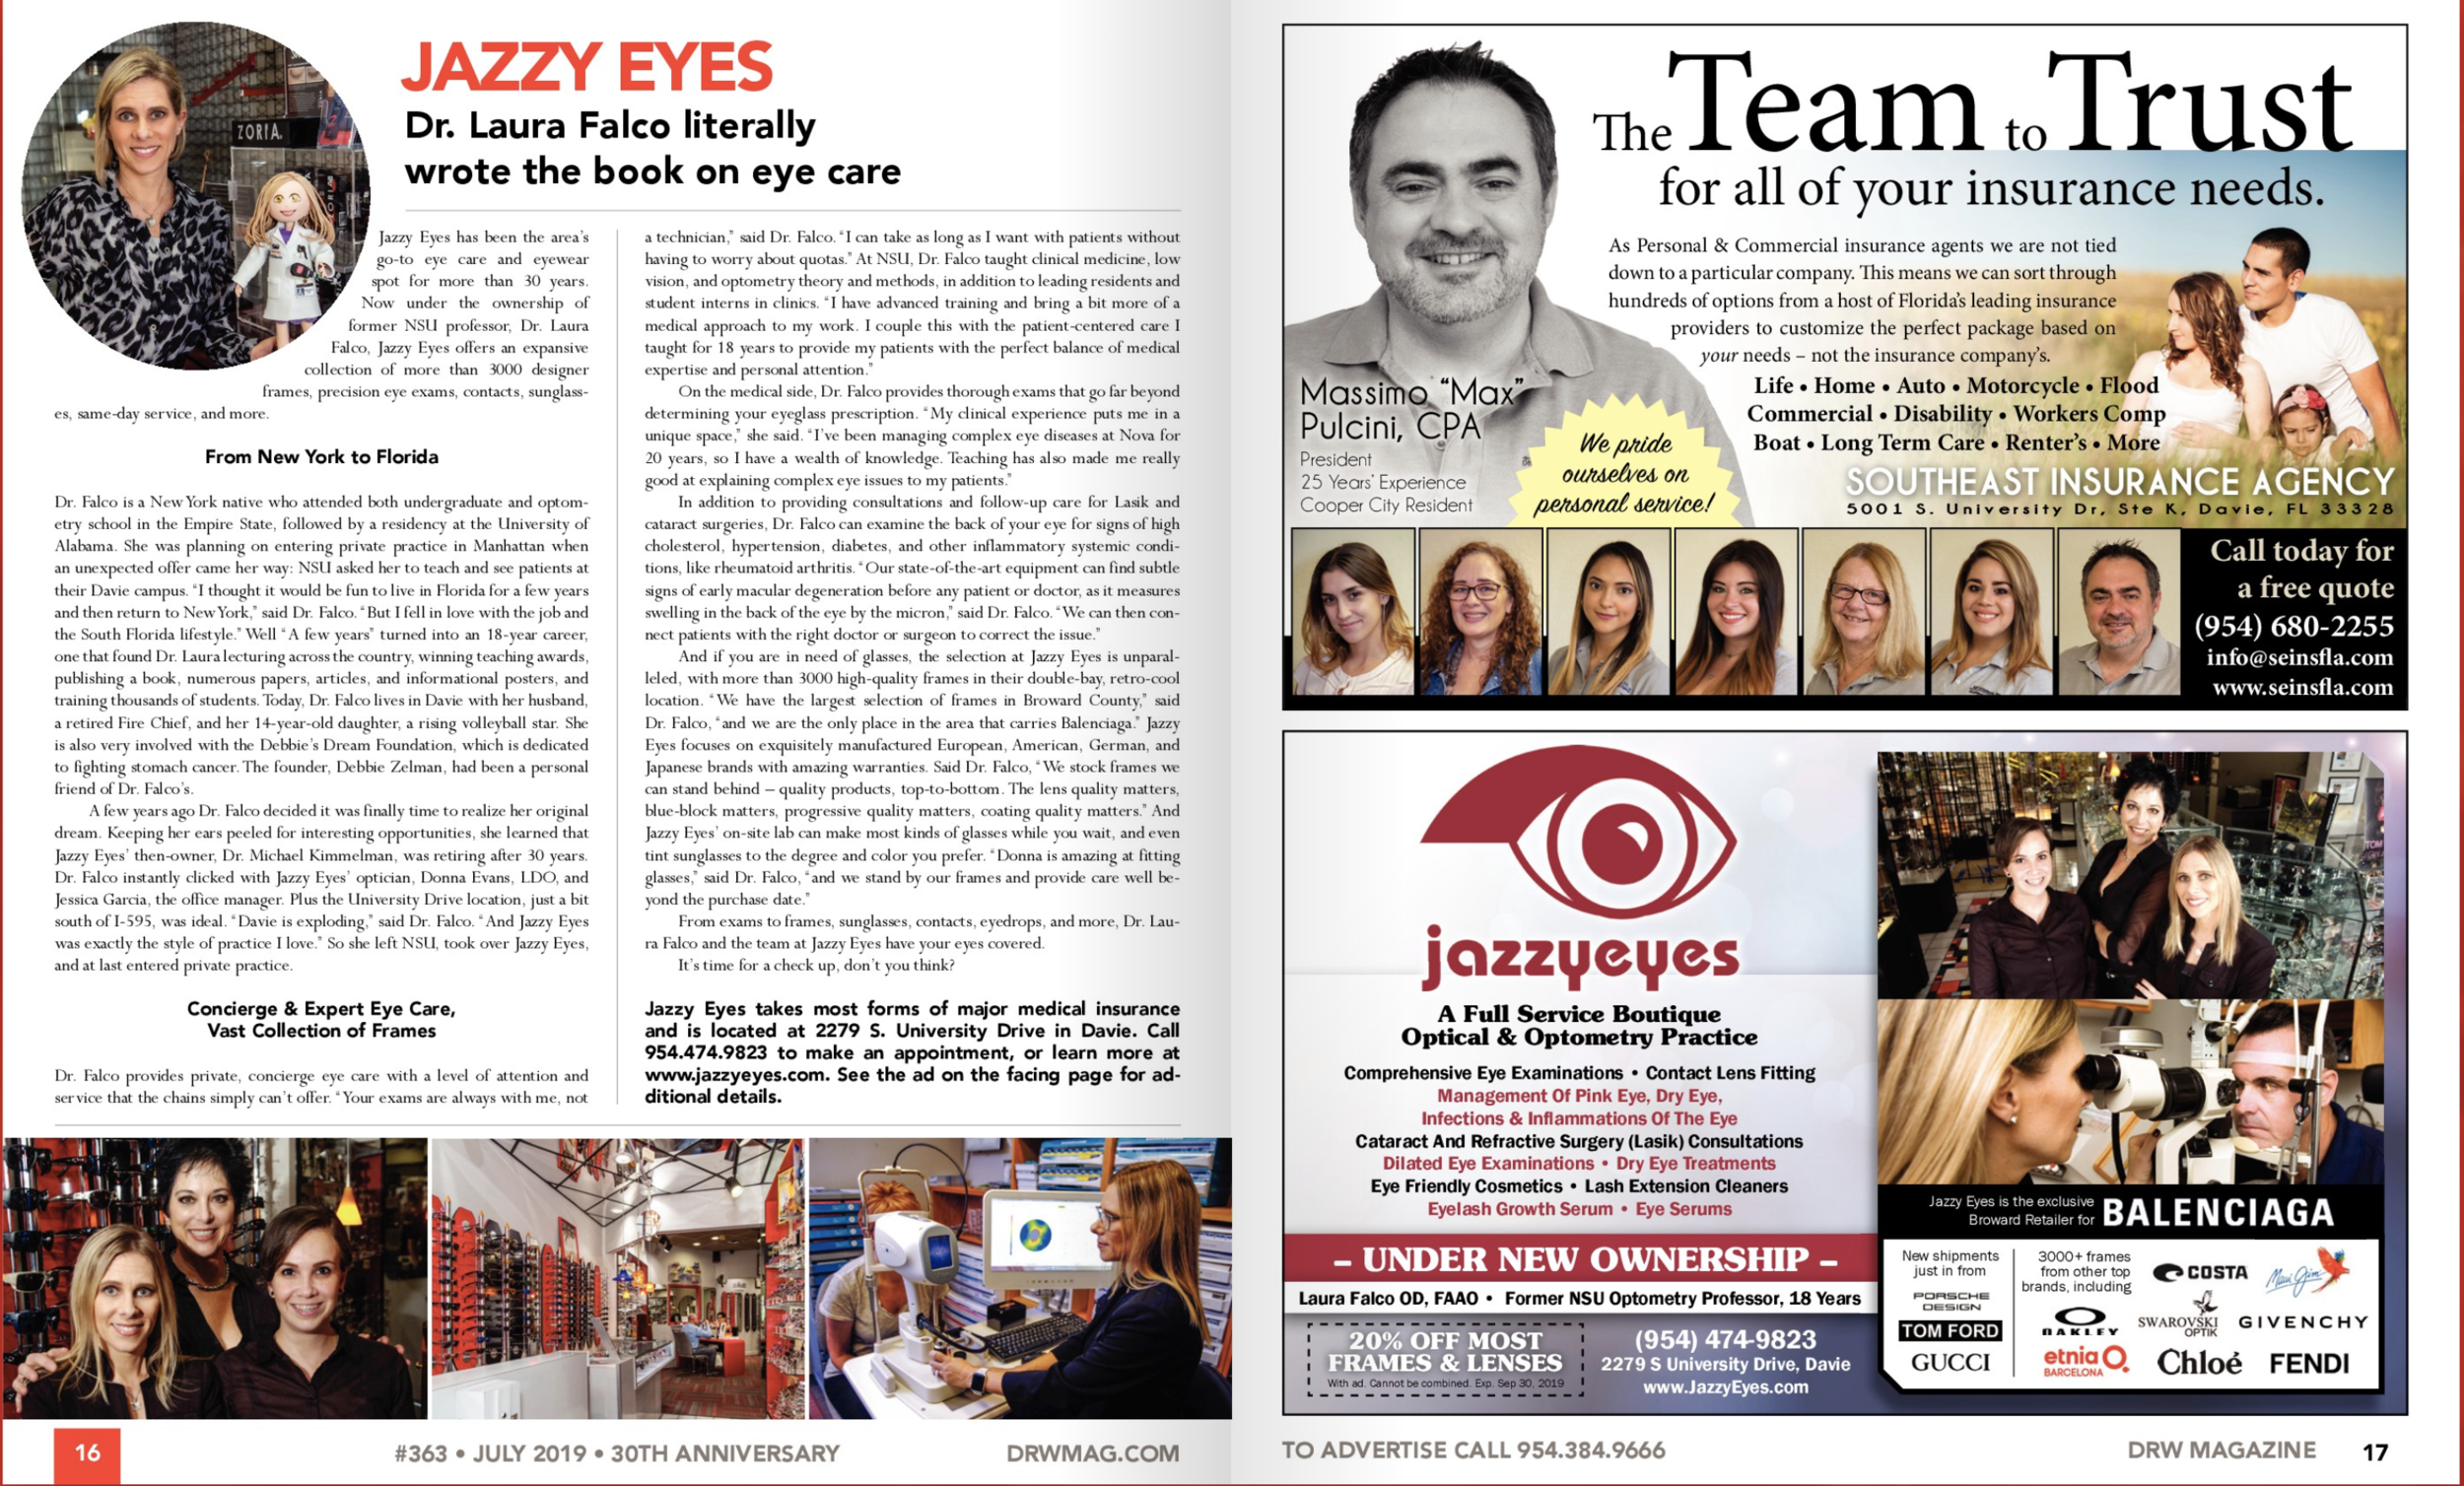 DRW Magazine Jazzy Eyes July 2019 Feature.png